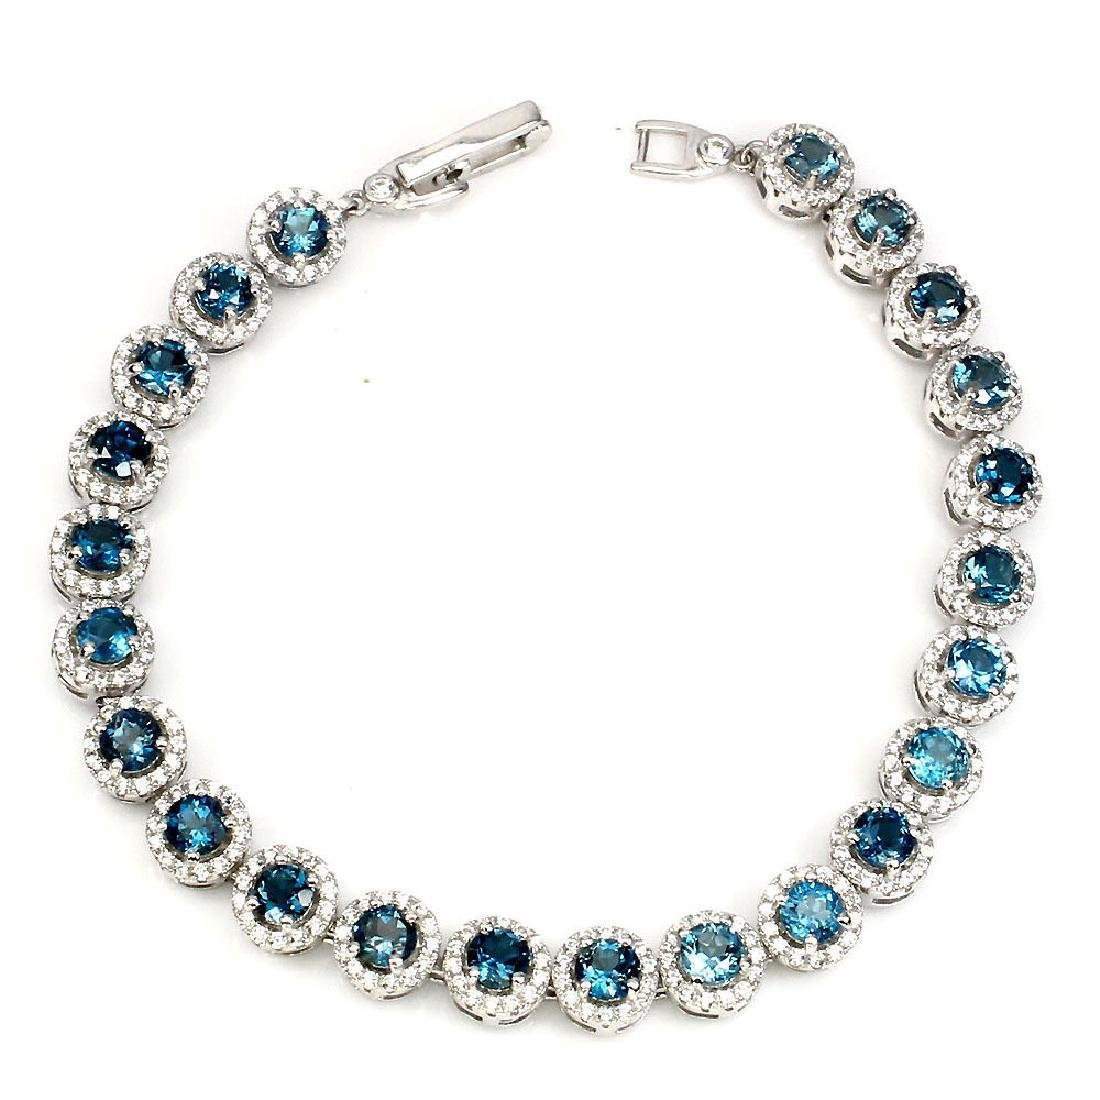 Natural London Blue Topaz 74 Carats Bracelet - 2